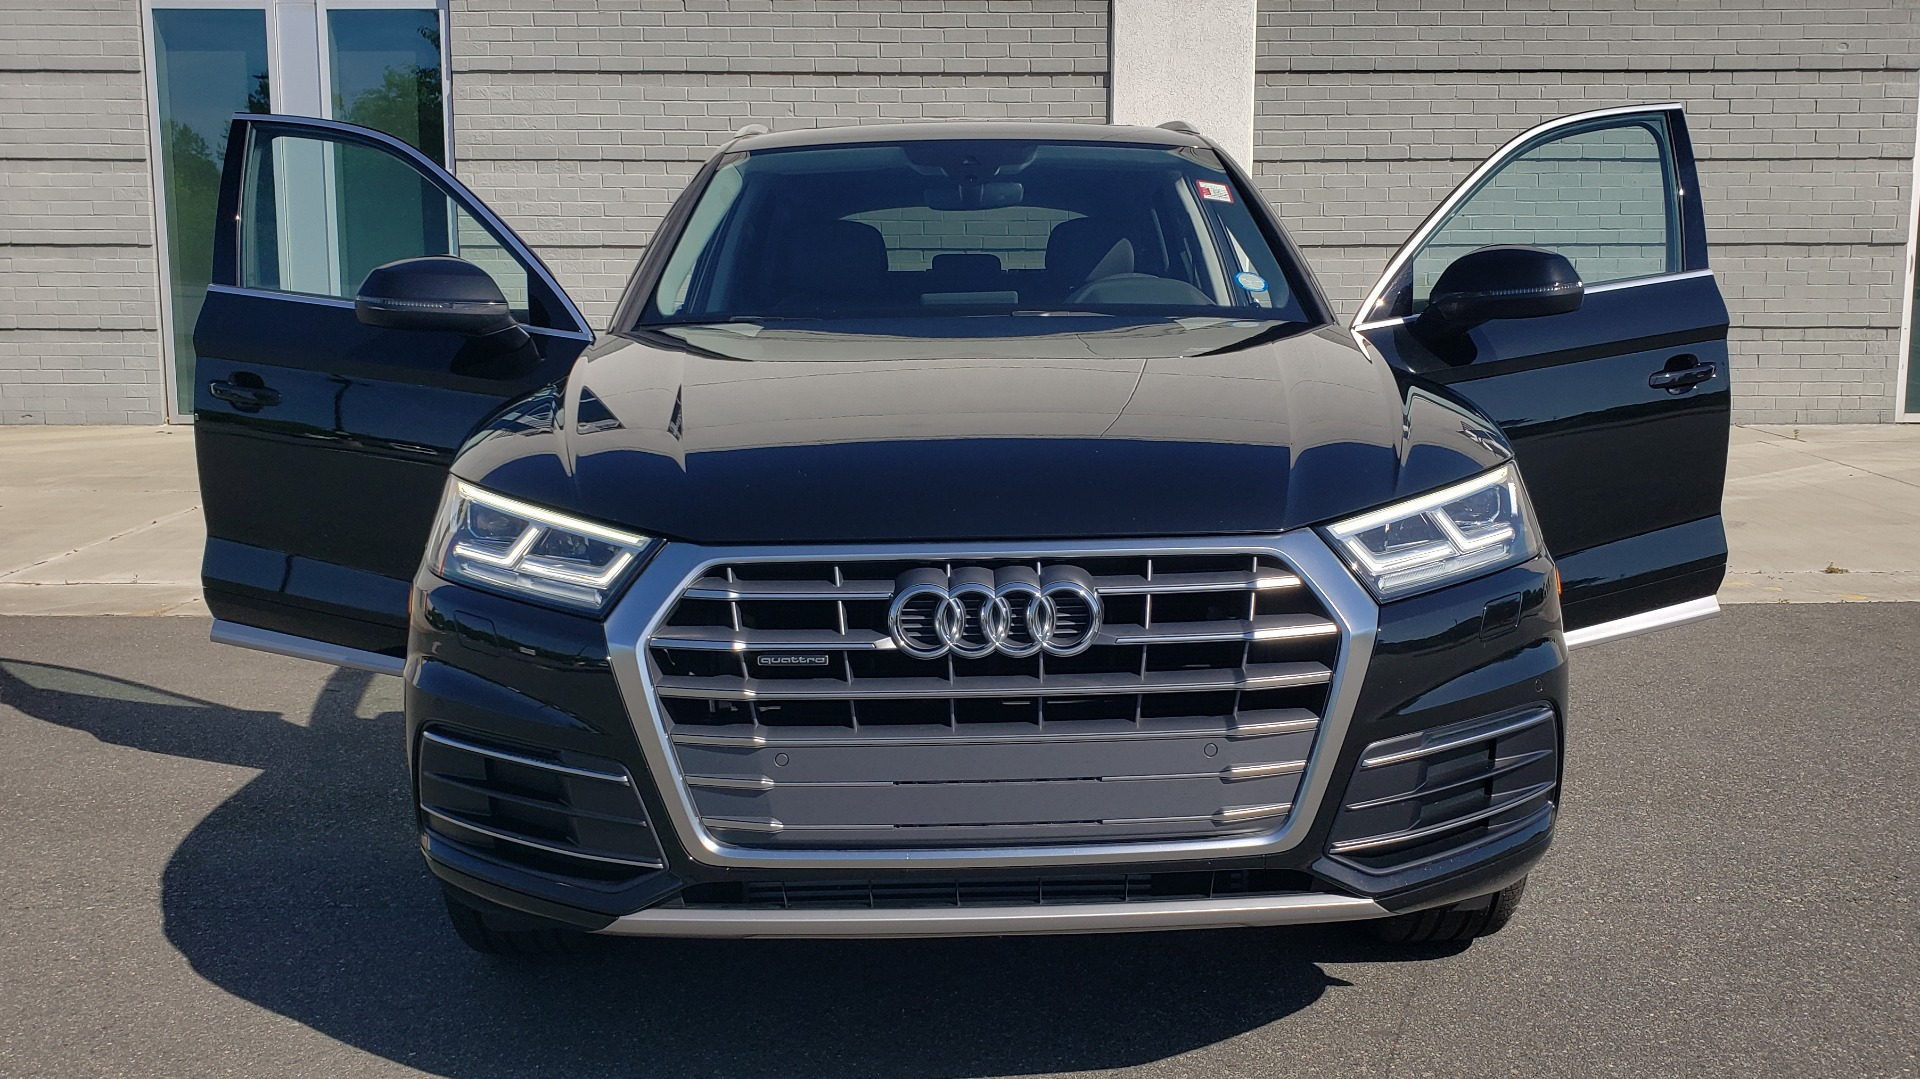 Used 2018 Audi Q5 PREMIUM PLUS / NAV / B&O SND / CLD WTHR / SUNROOF / REARVIEW for sale Sold at Formula Imports in Charlotte NC 28227 21